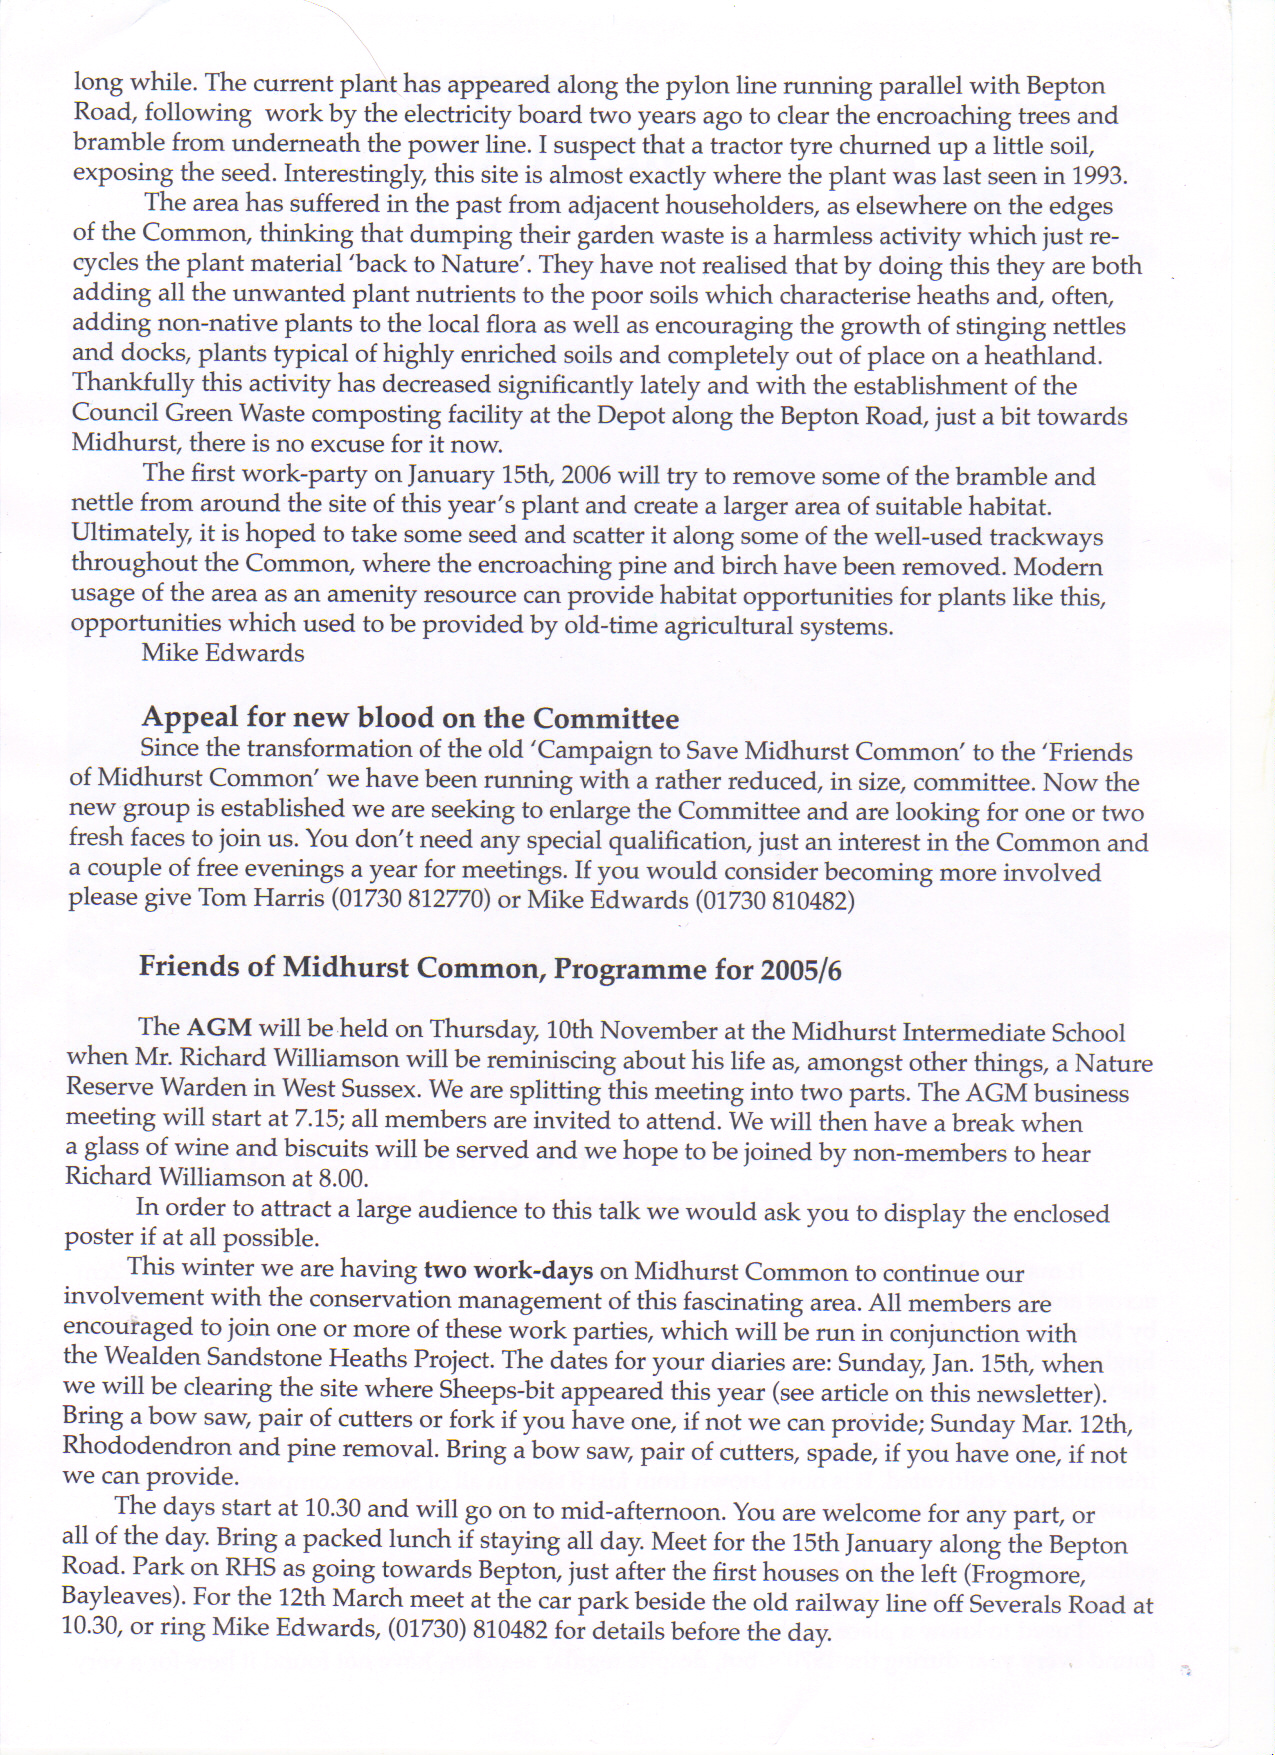 Newsletter no 8 part 2 of 2 October 2005